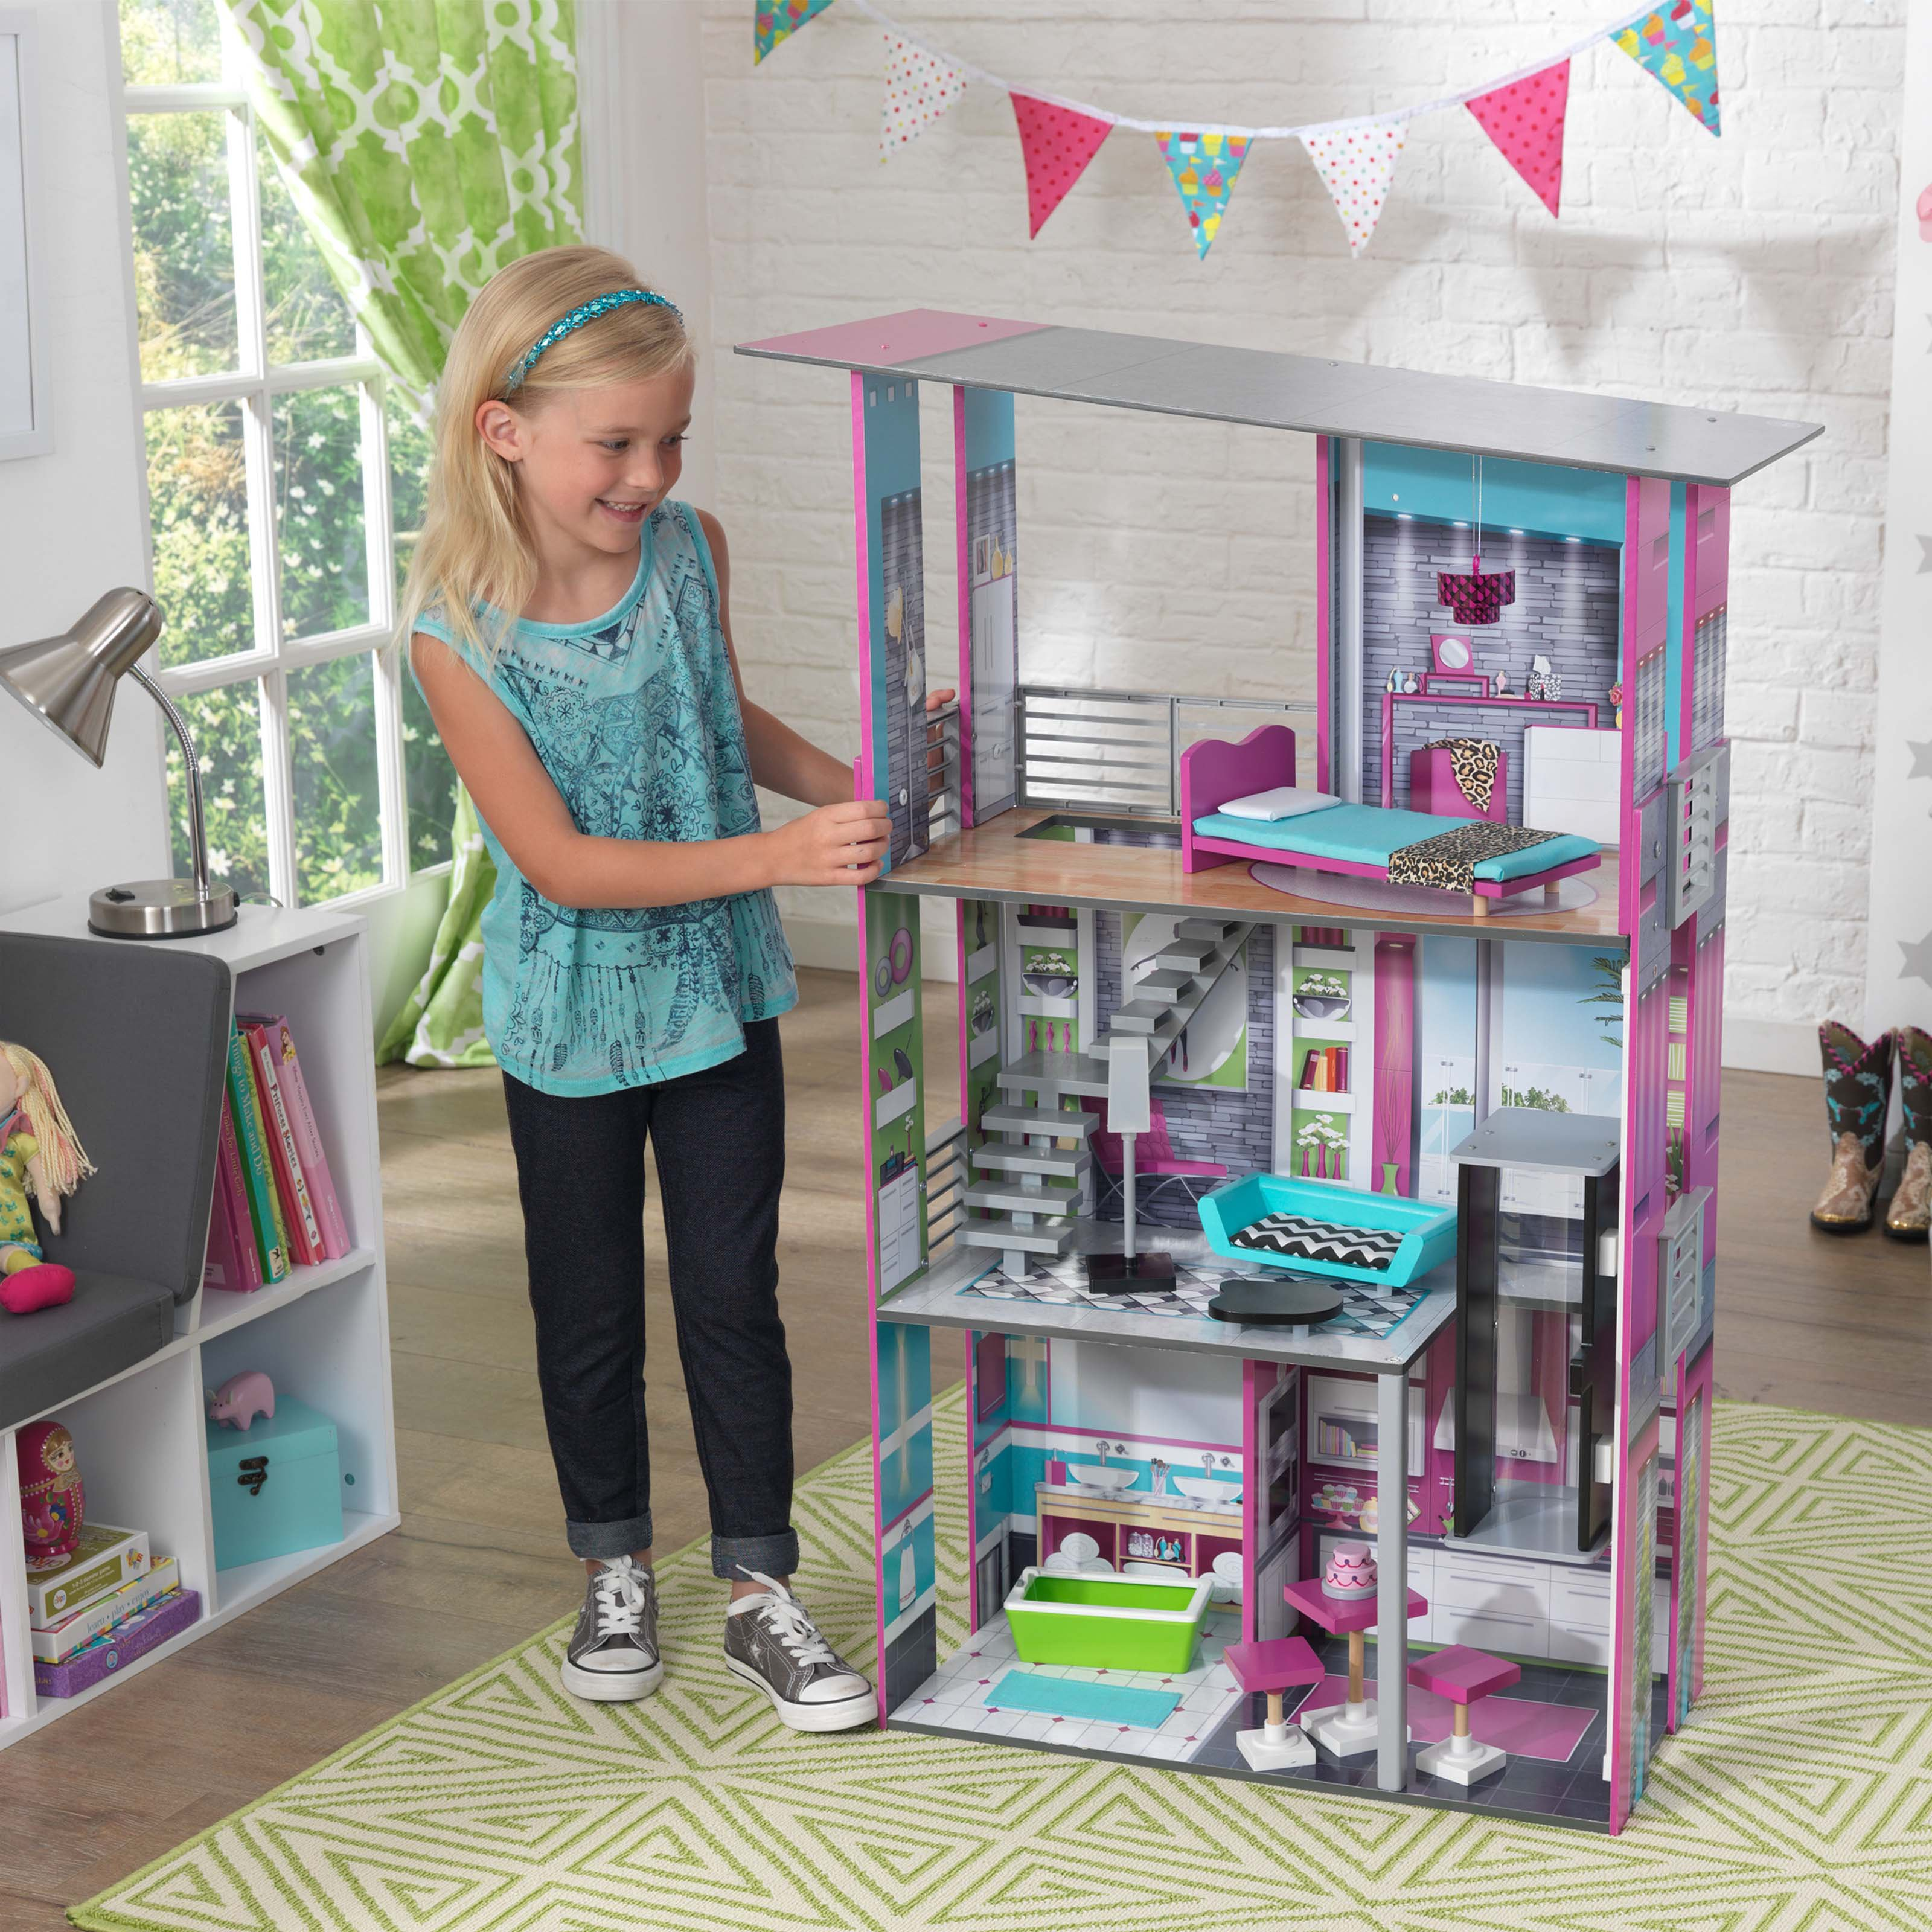 Kidkraft Glamorous Wooden Dollhouse With 14 Pieces Of Furniture